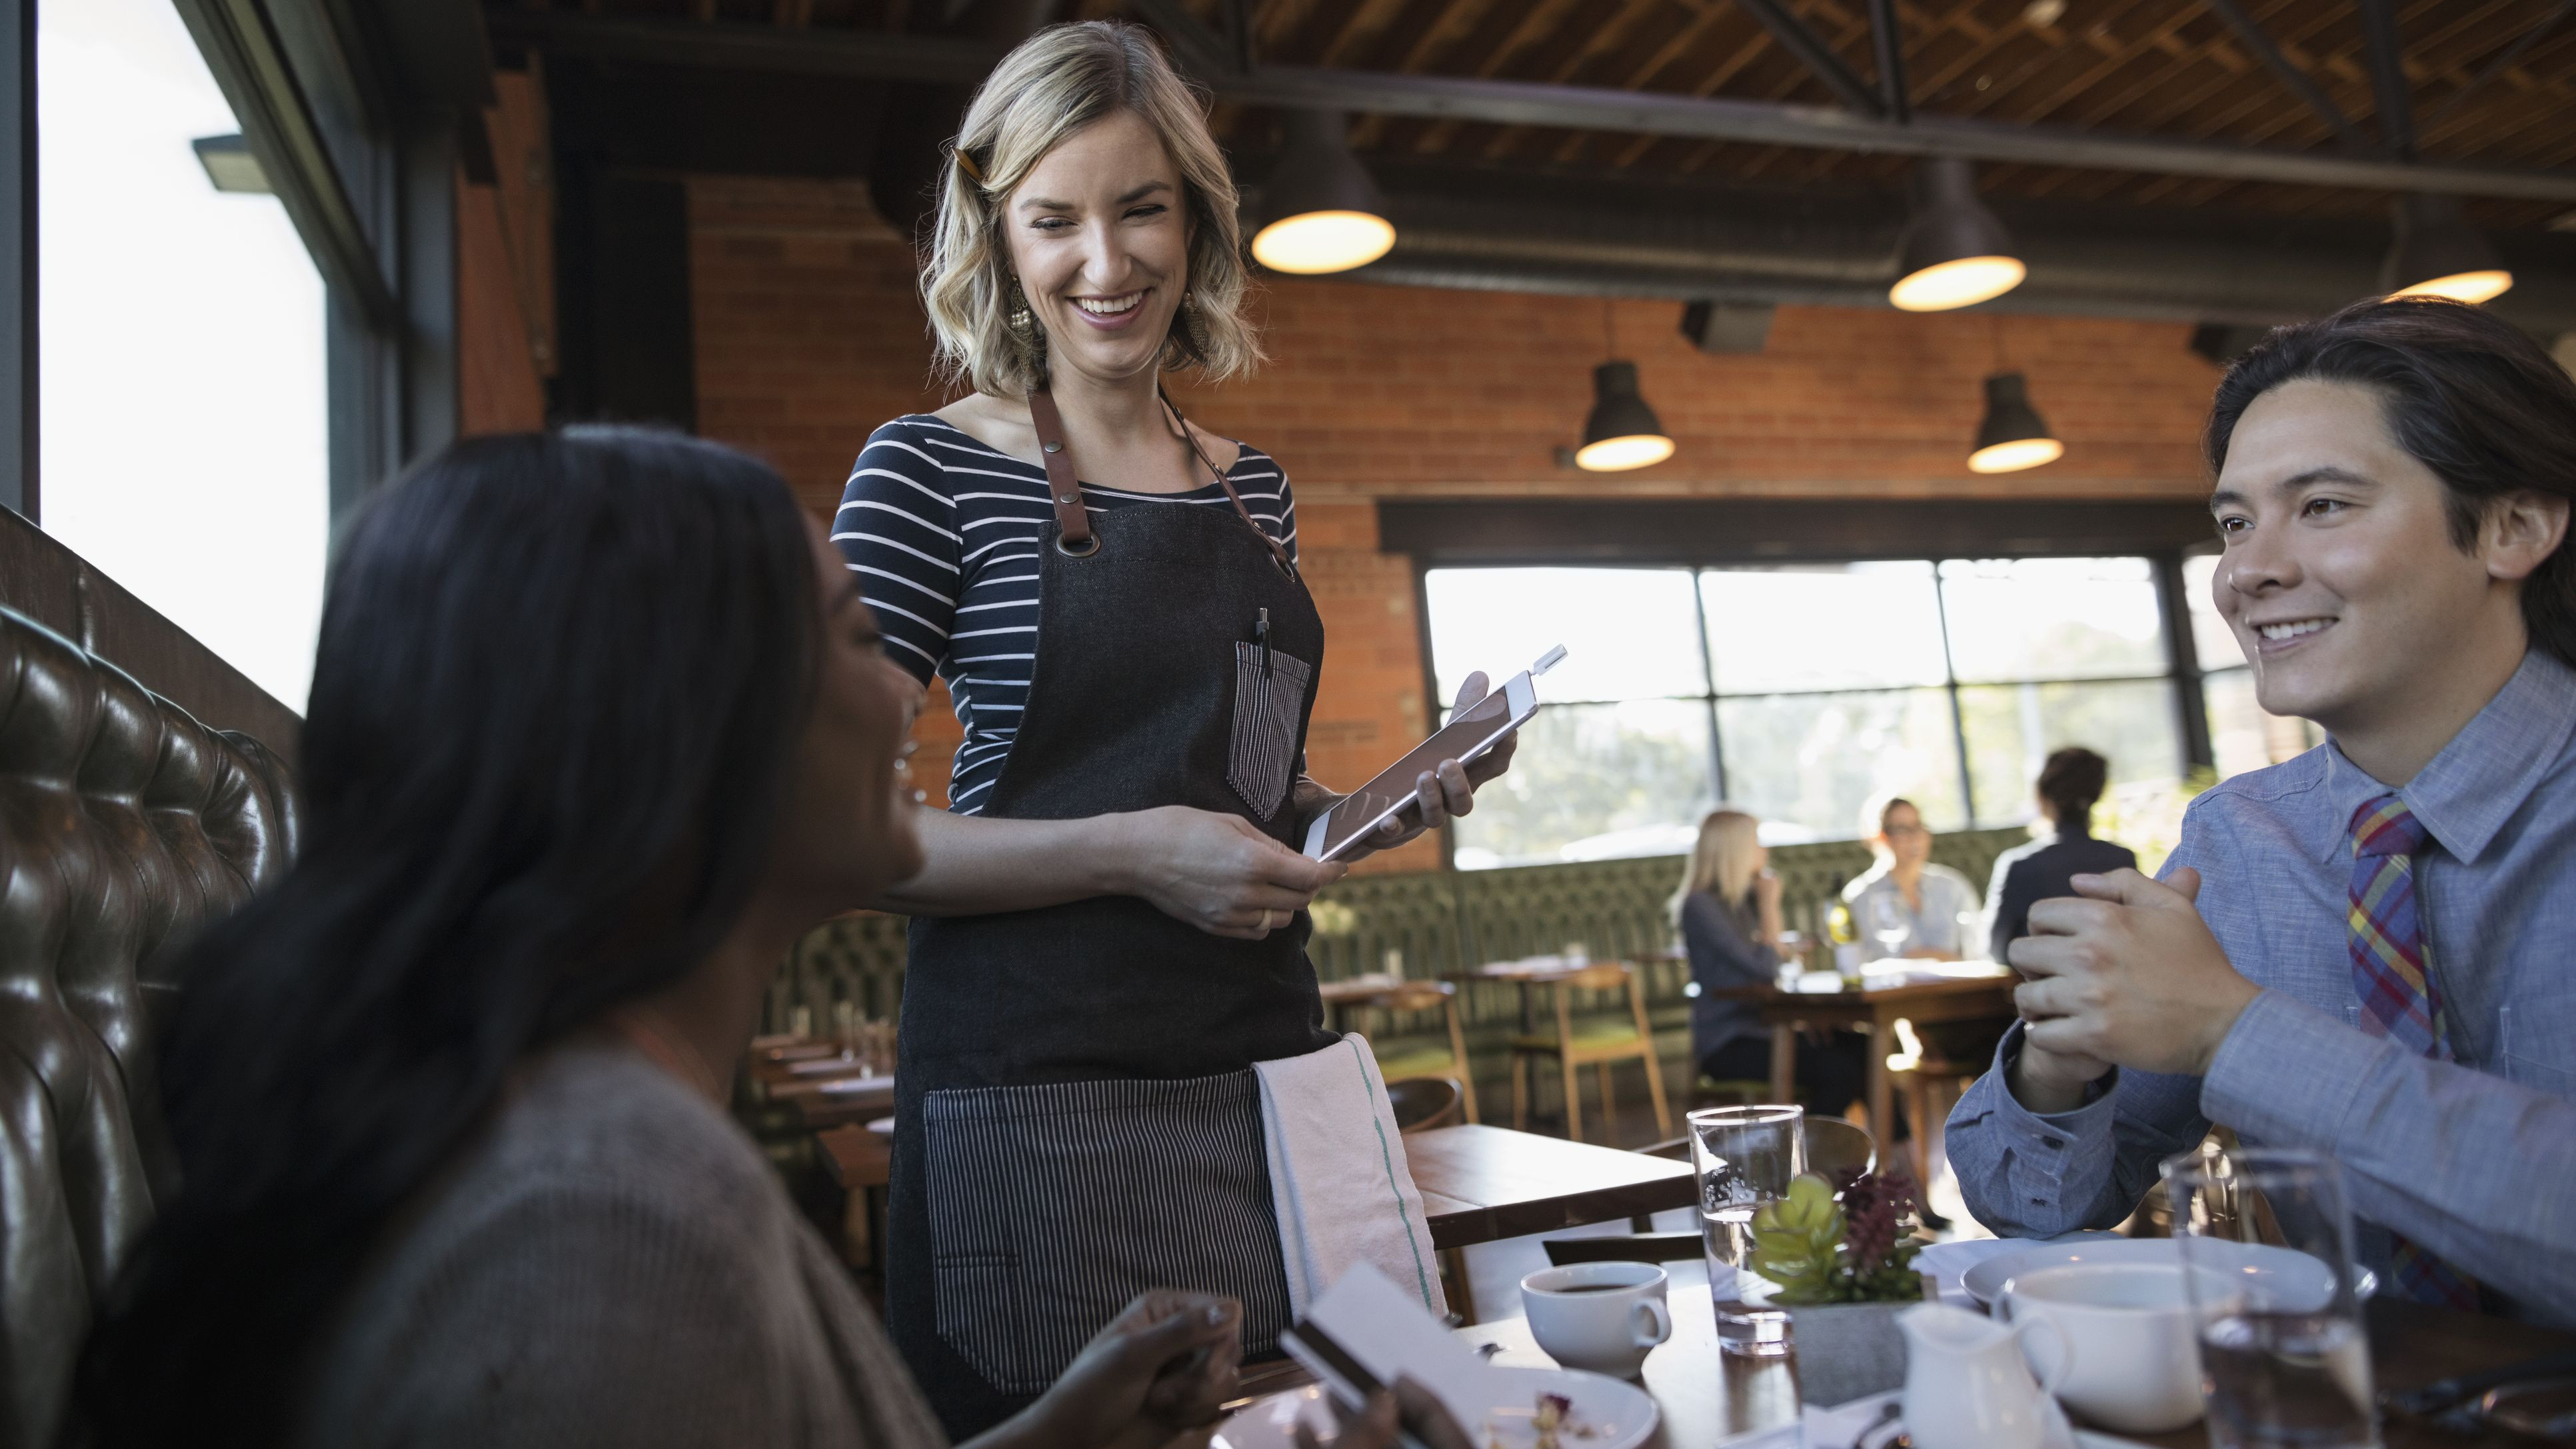 Do Restaurants Have to Pay Minimum Wage?